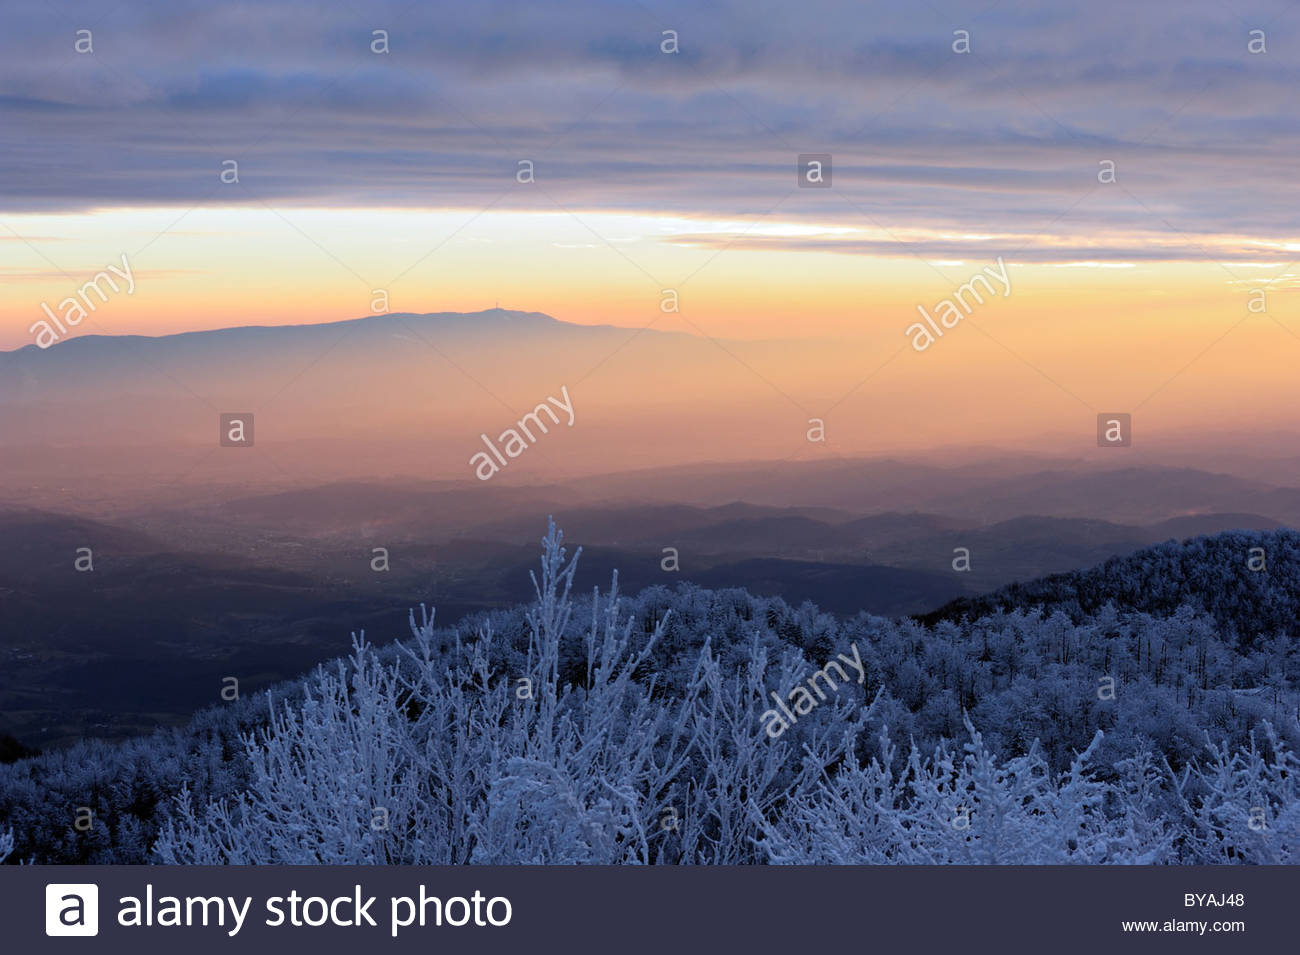 View on the mountain Medvednica from the peak of mountain Ivancica. - Stock Image